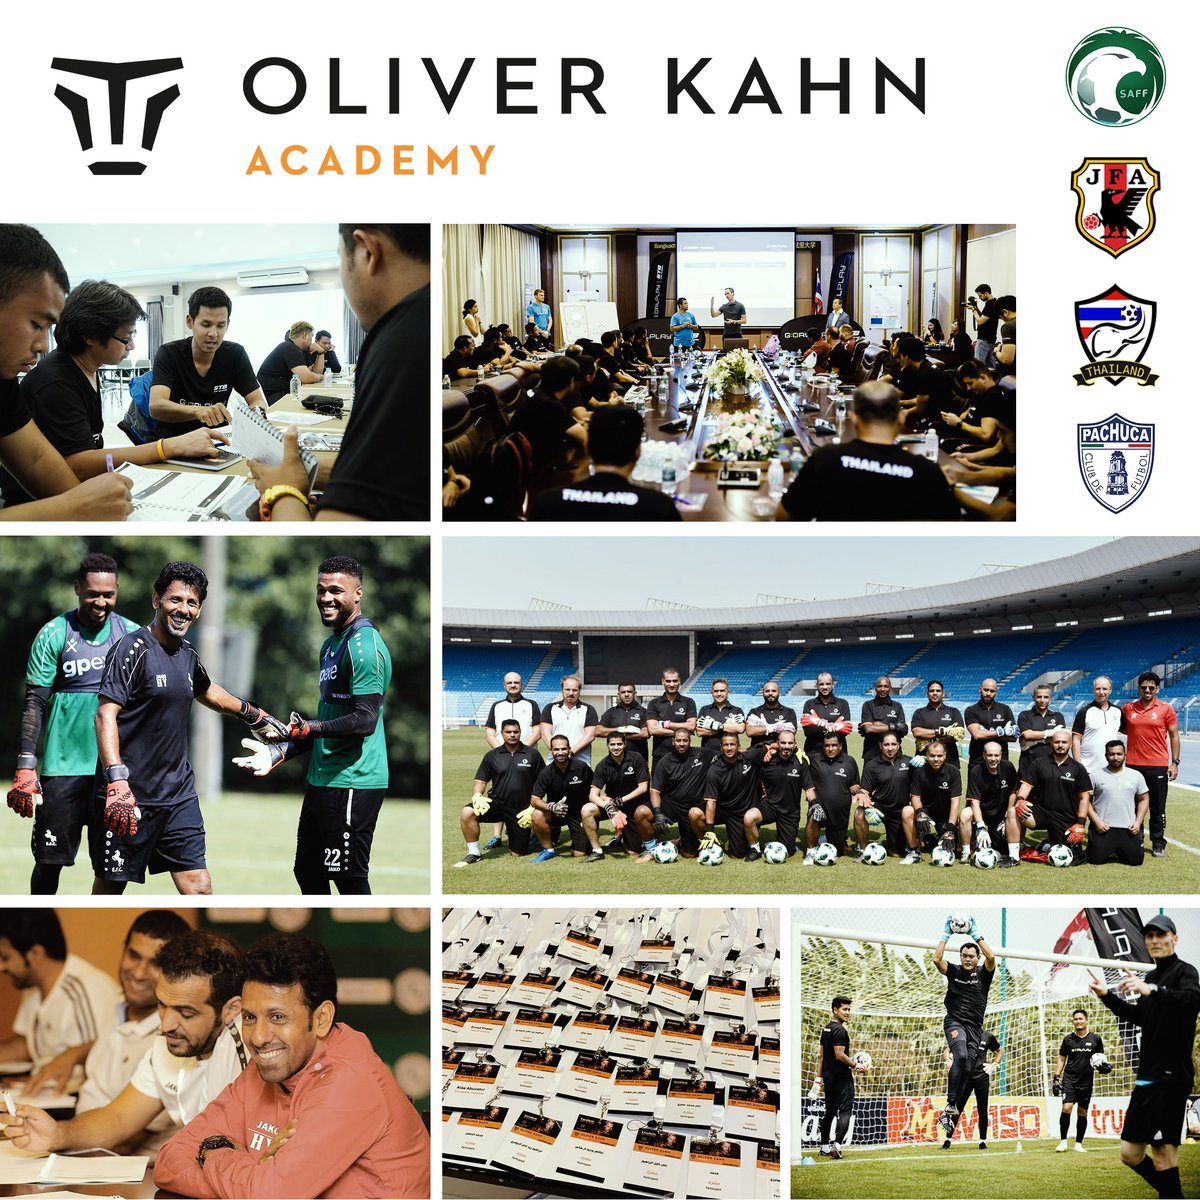 What a year! In 2019, the Oliver Kahn Academy has educated more than 500 coaches on 4 continents. It's great to see how the development of sports in countries like Thailand or Saudi Arabia, where we've been working for many years, can be driven forward. Thanks everyone involved🙏🏼 https://t.co/64dckTrhcI